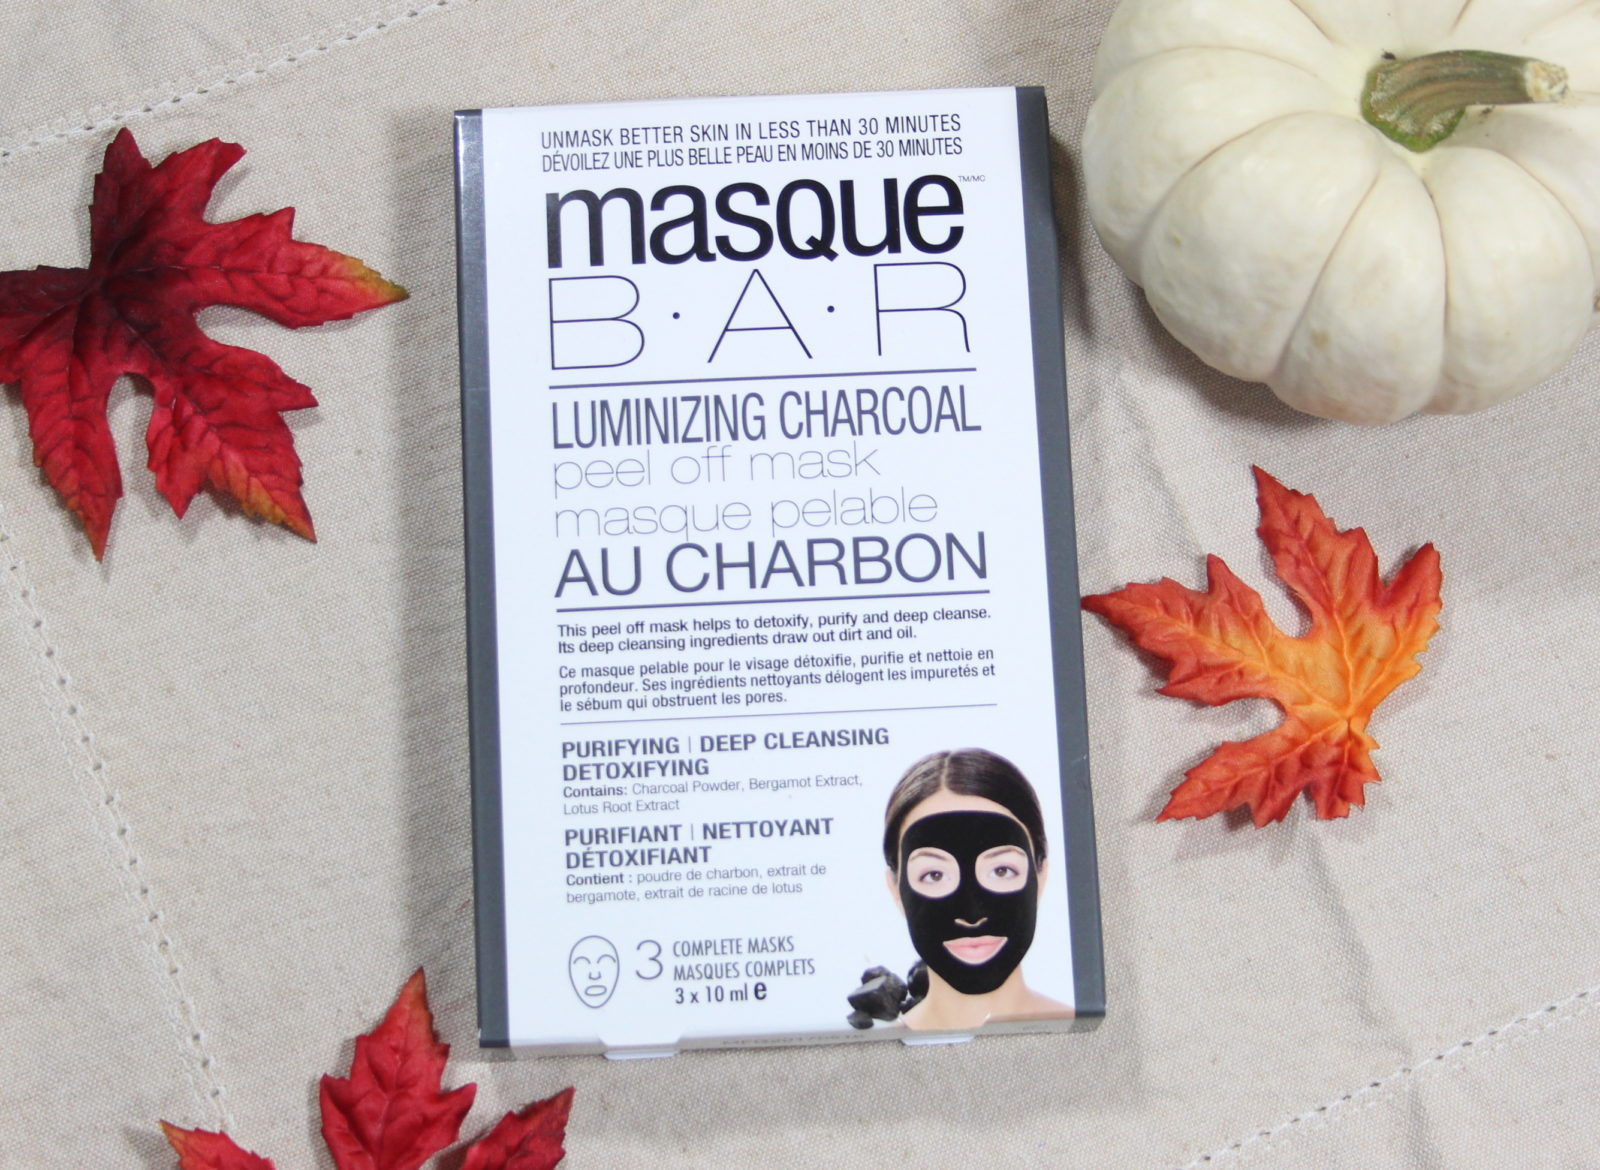 Masque Bar Charcoal Peel Off Mask